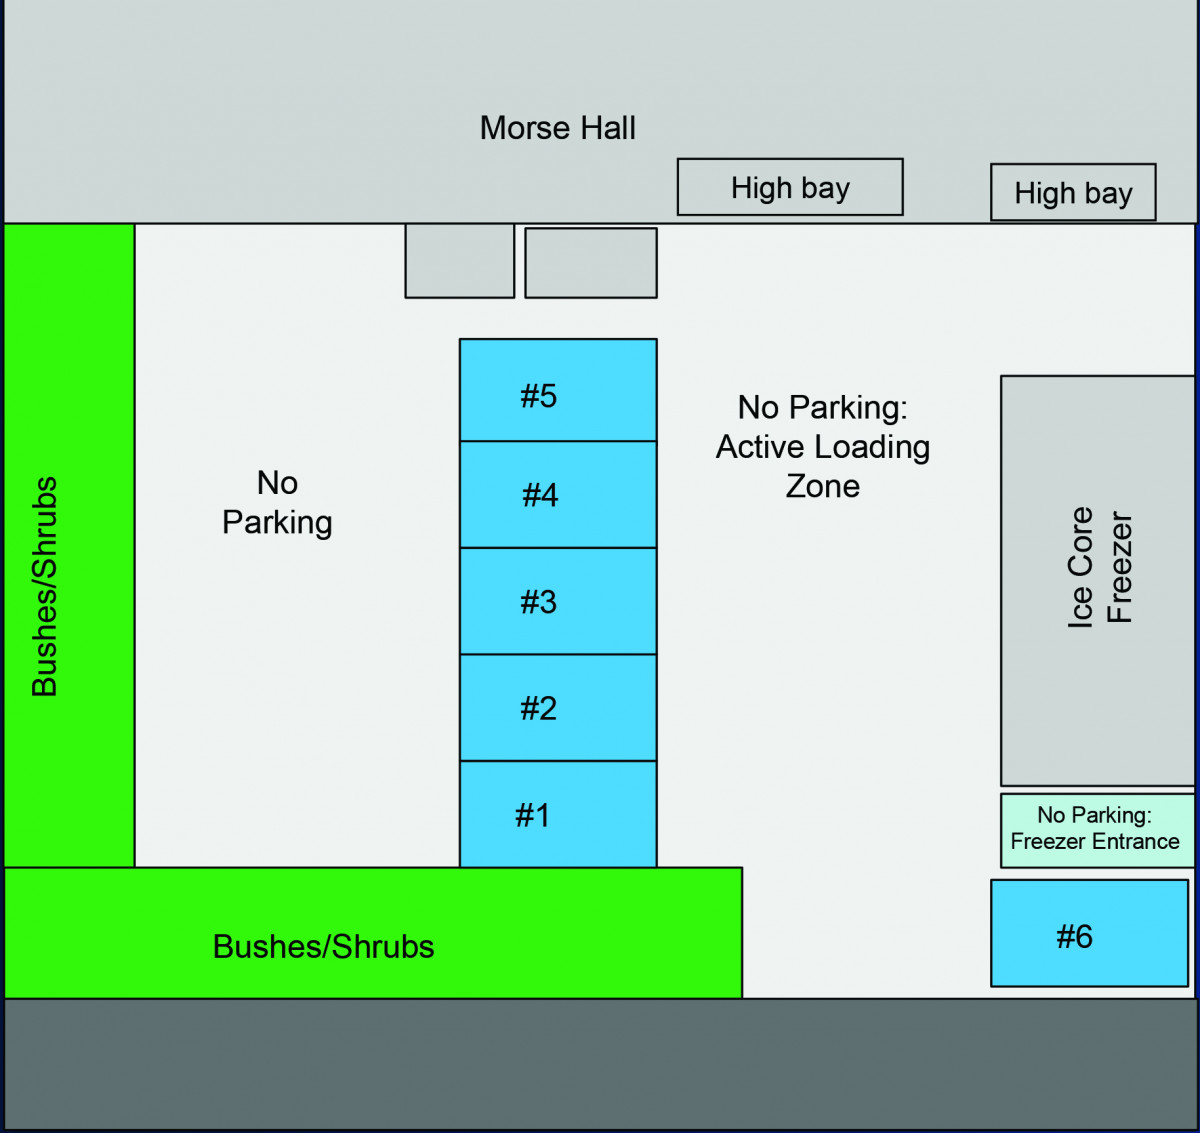 Diagram of parking spots near Morse Hall